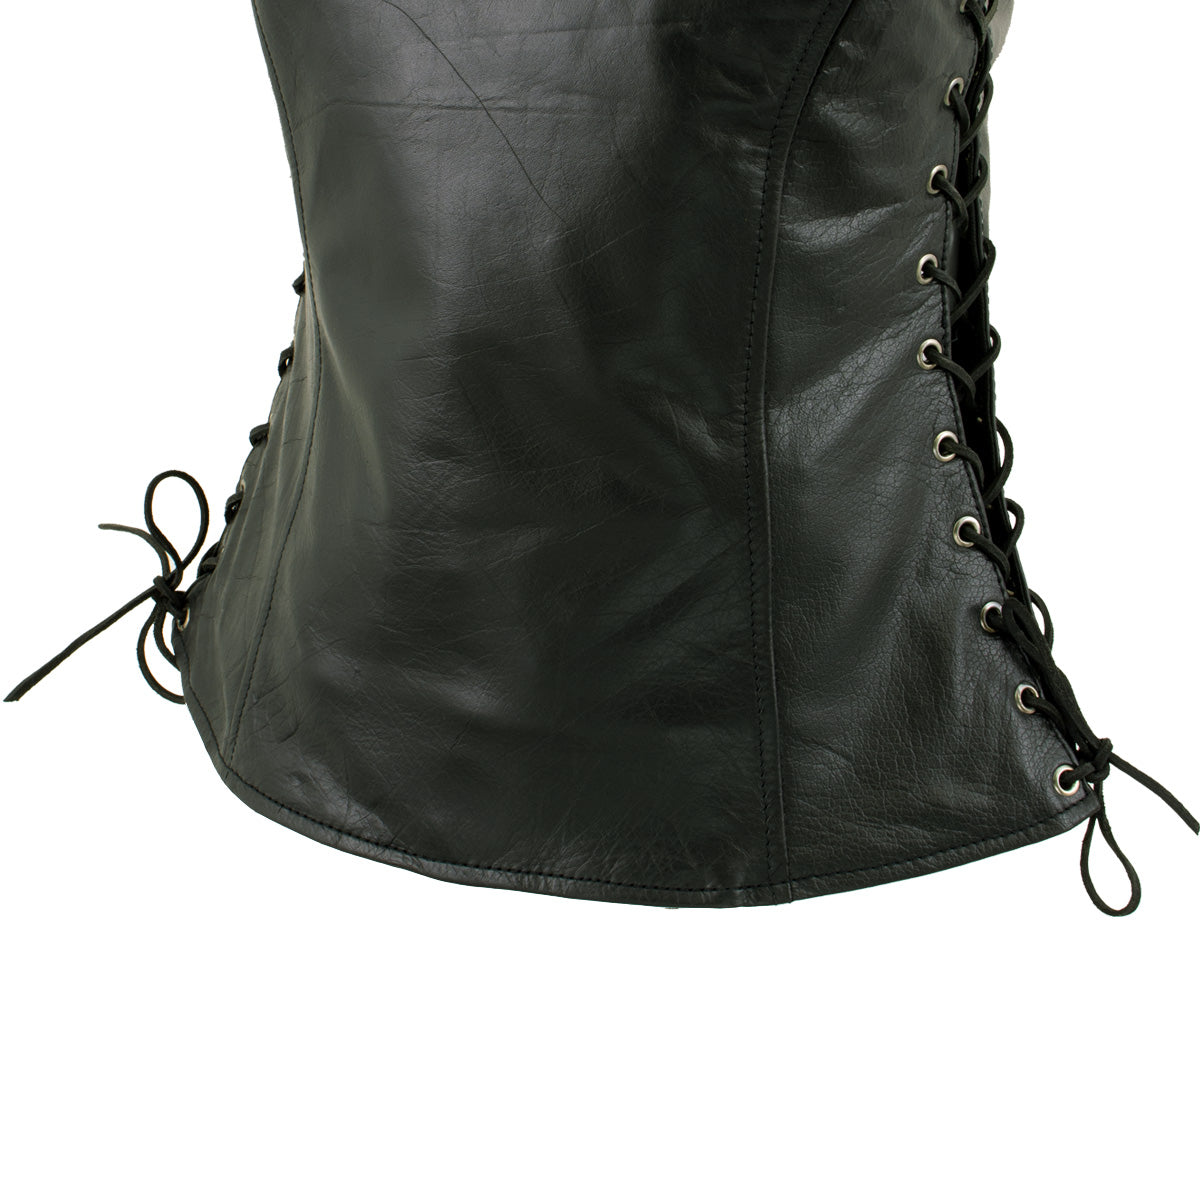 Xelement XS4505 /'Flannel/' Women/'s Black Leather Vest with Snap Button Closure X-Small